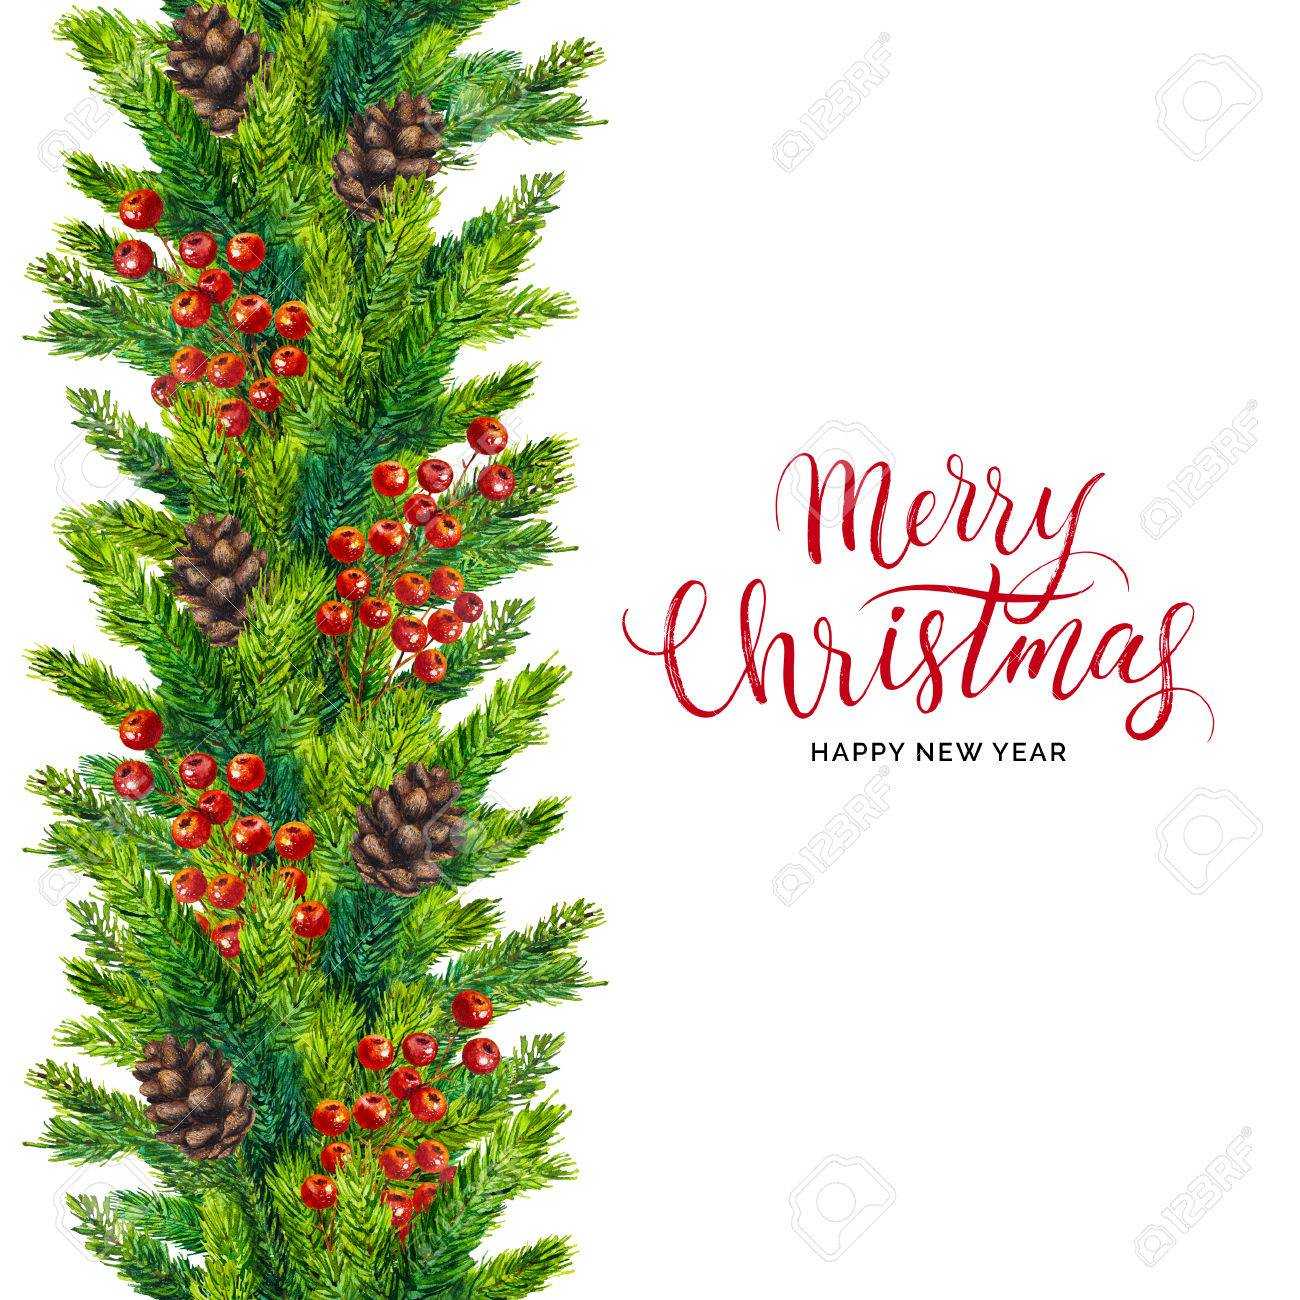 Christmas Card Border.Merry Christmas Card Xmas Text On Watercolor Seamless Border